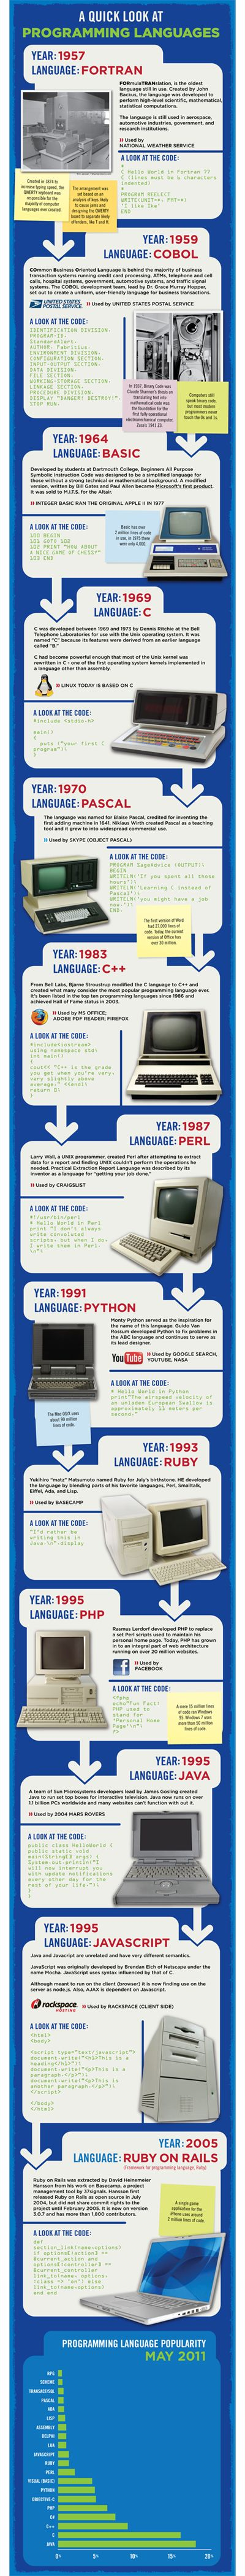 Evolution of Programming Languages by RackSpace. Well-intended, and the lossy compression image format is endearingly retro.